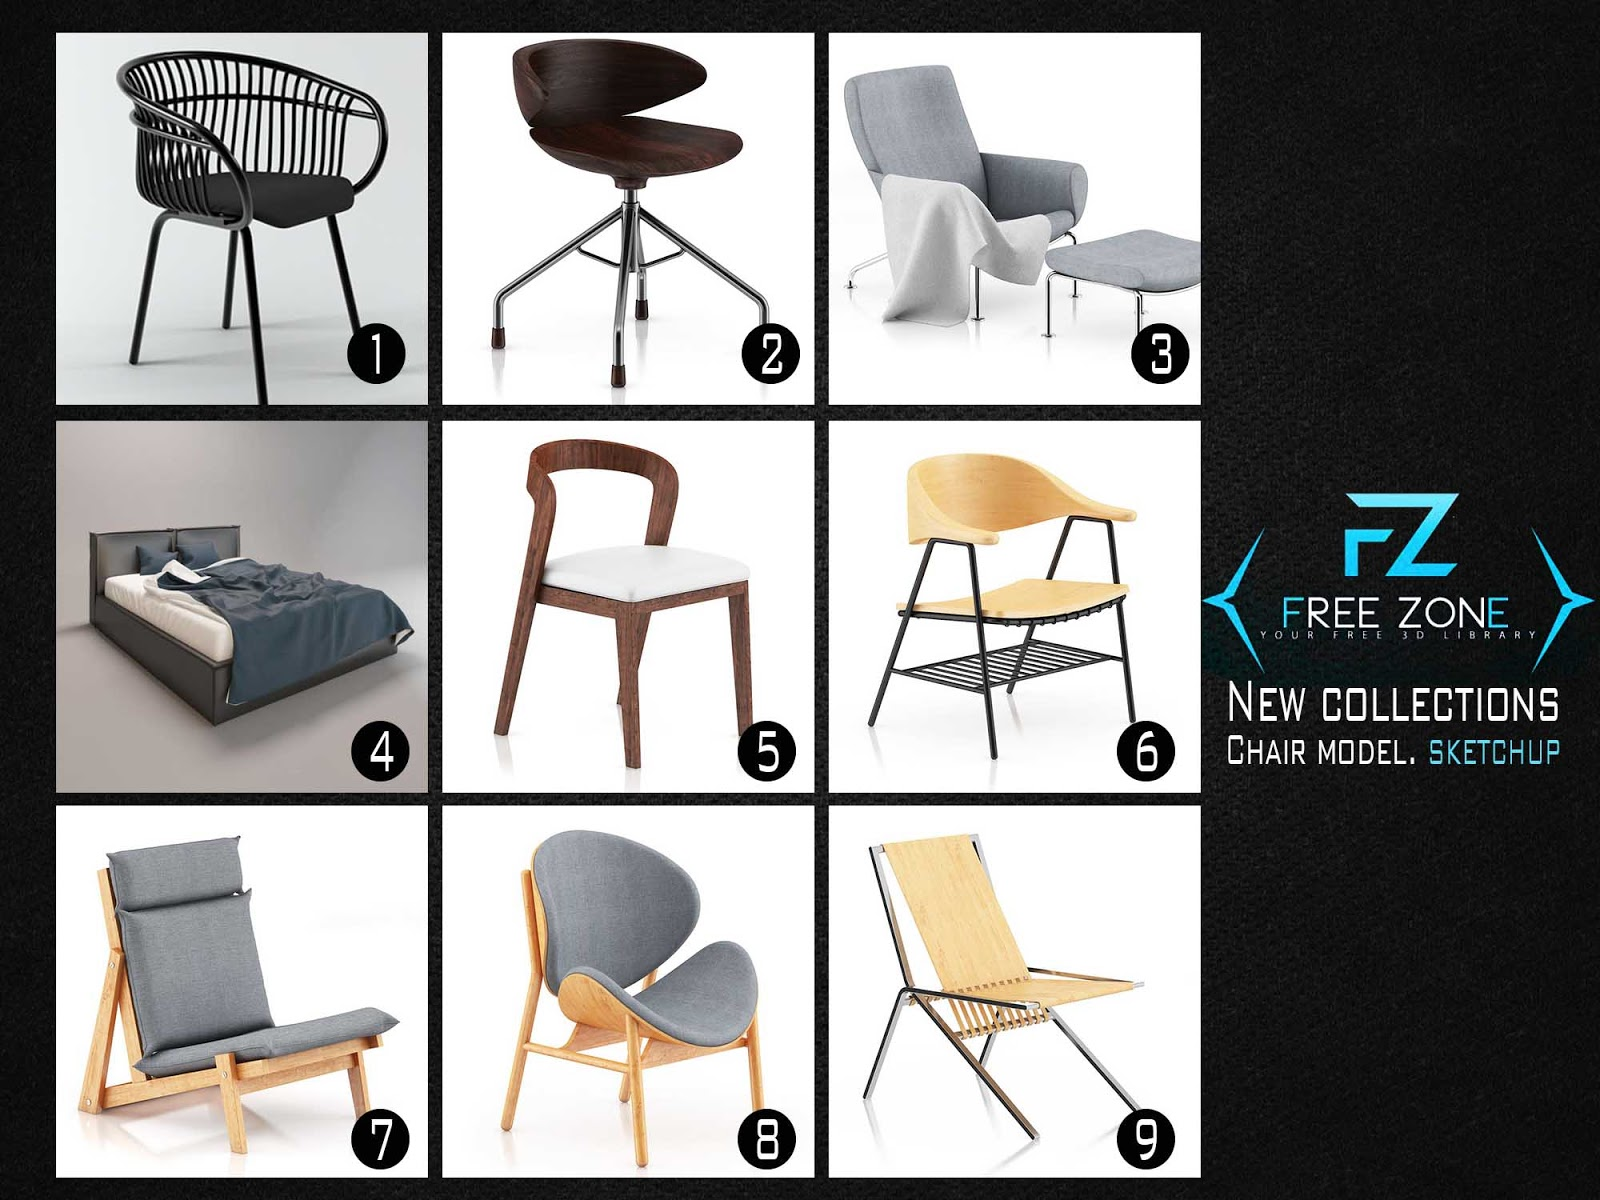 NEW COLLECTIONS SKETCHUP - MODERN CHAIR MODEL - FreeZone8D